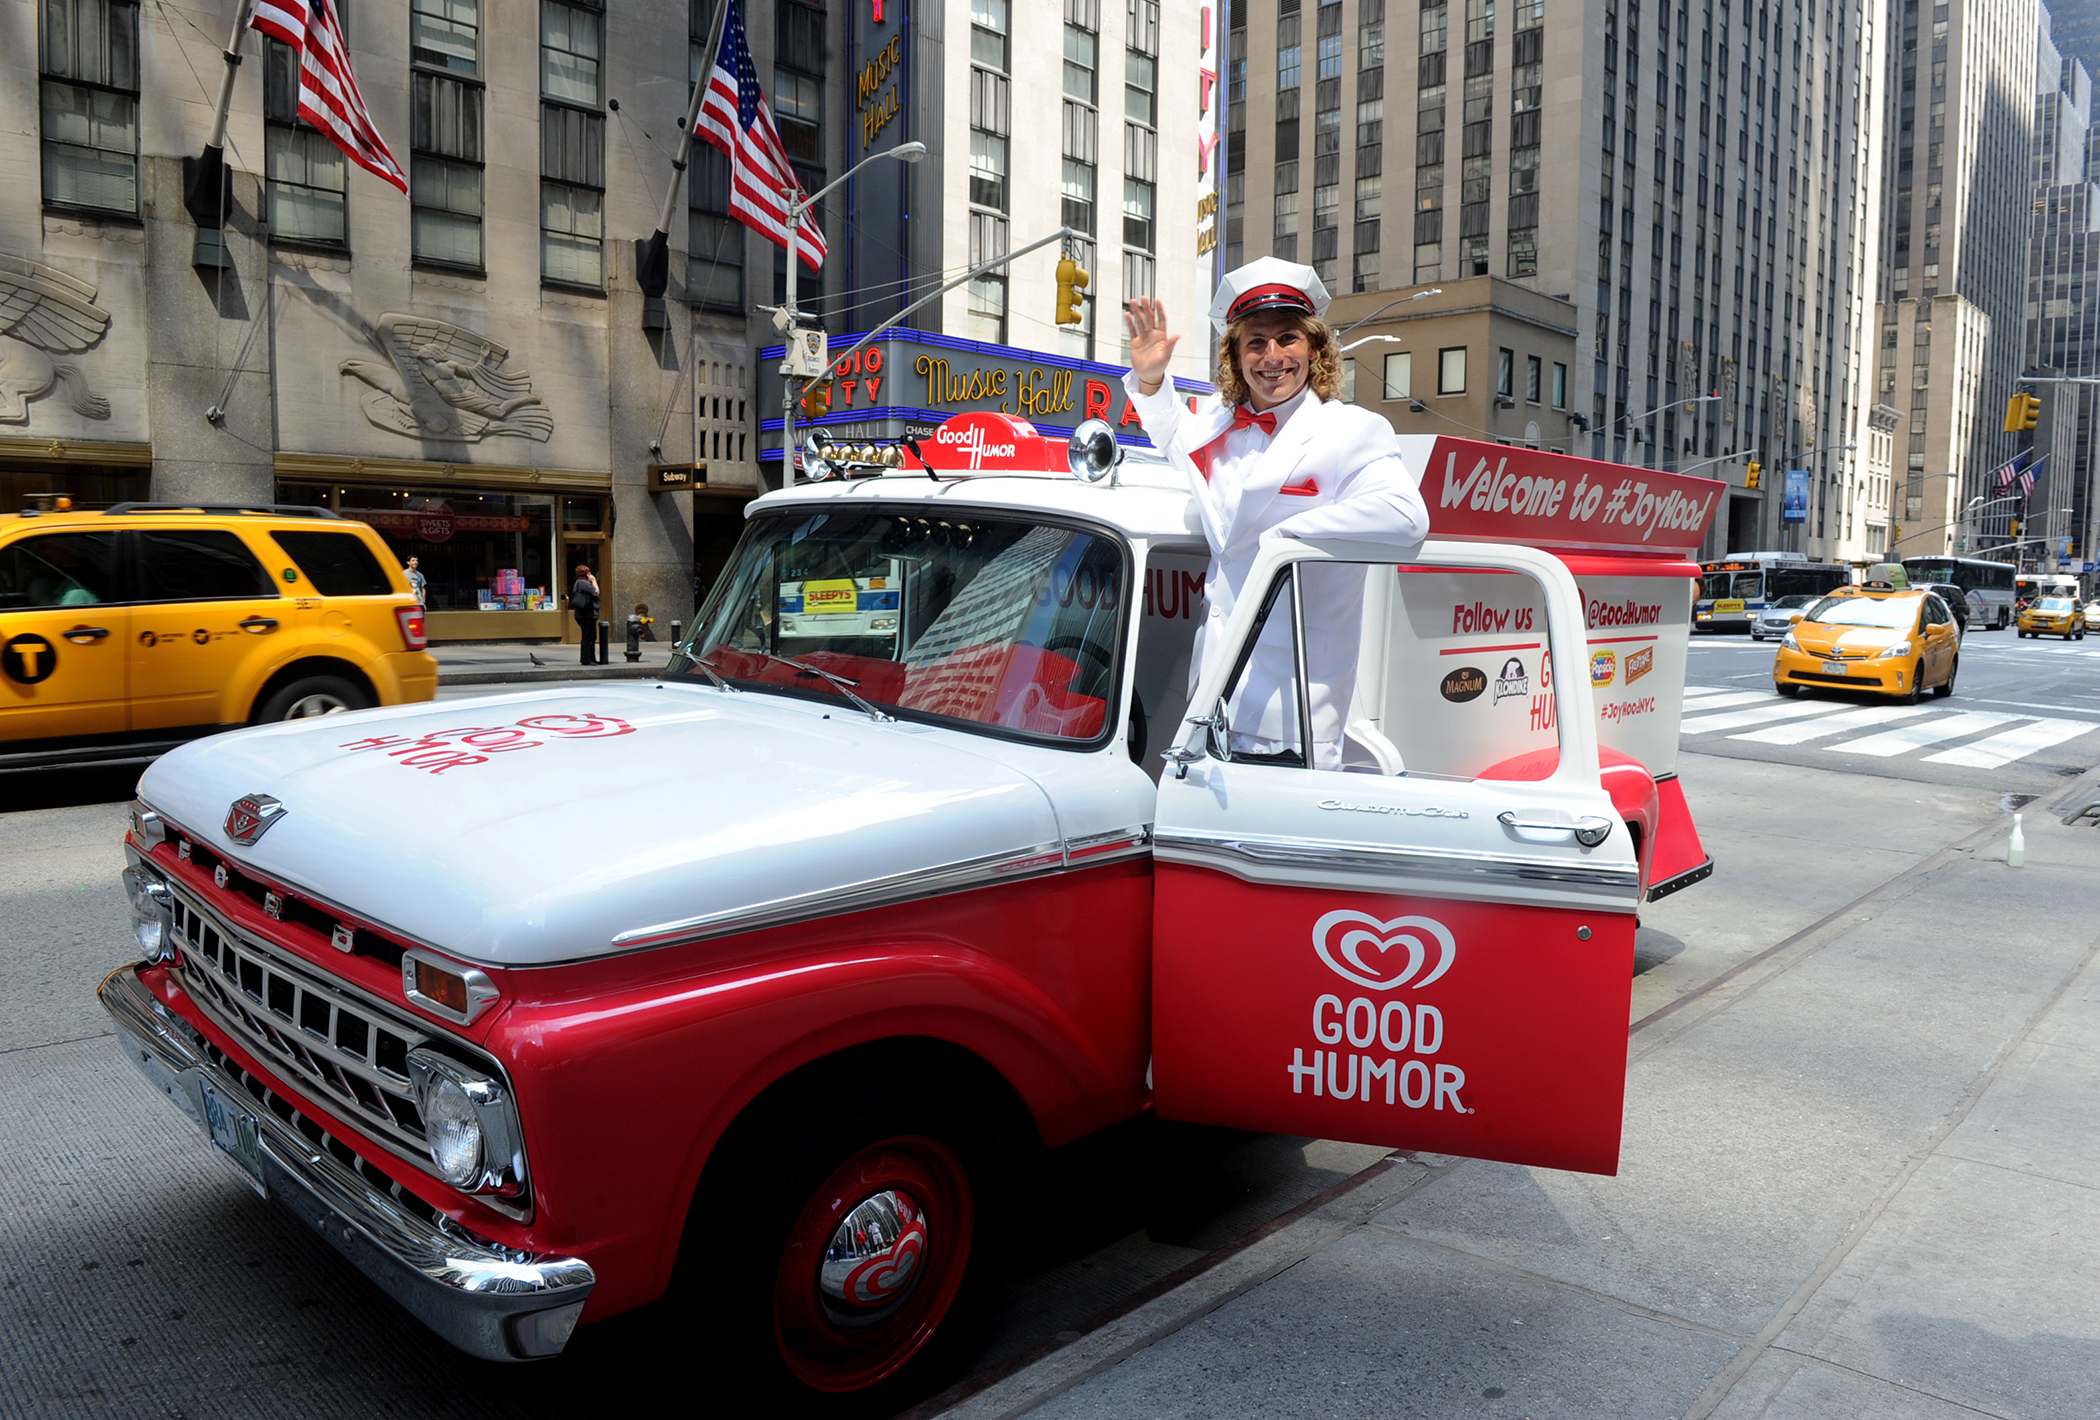 Unveiling of The Good Humor Joy Squad and launch of the Good Humor Welcome to Joyhood campaign,Thursday, June 25, 2015, in New York.